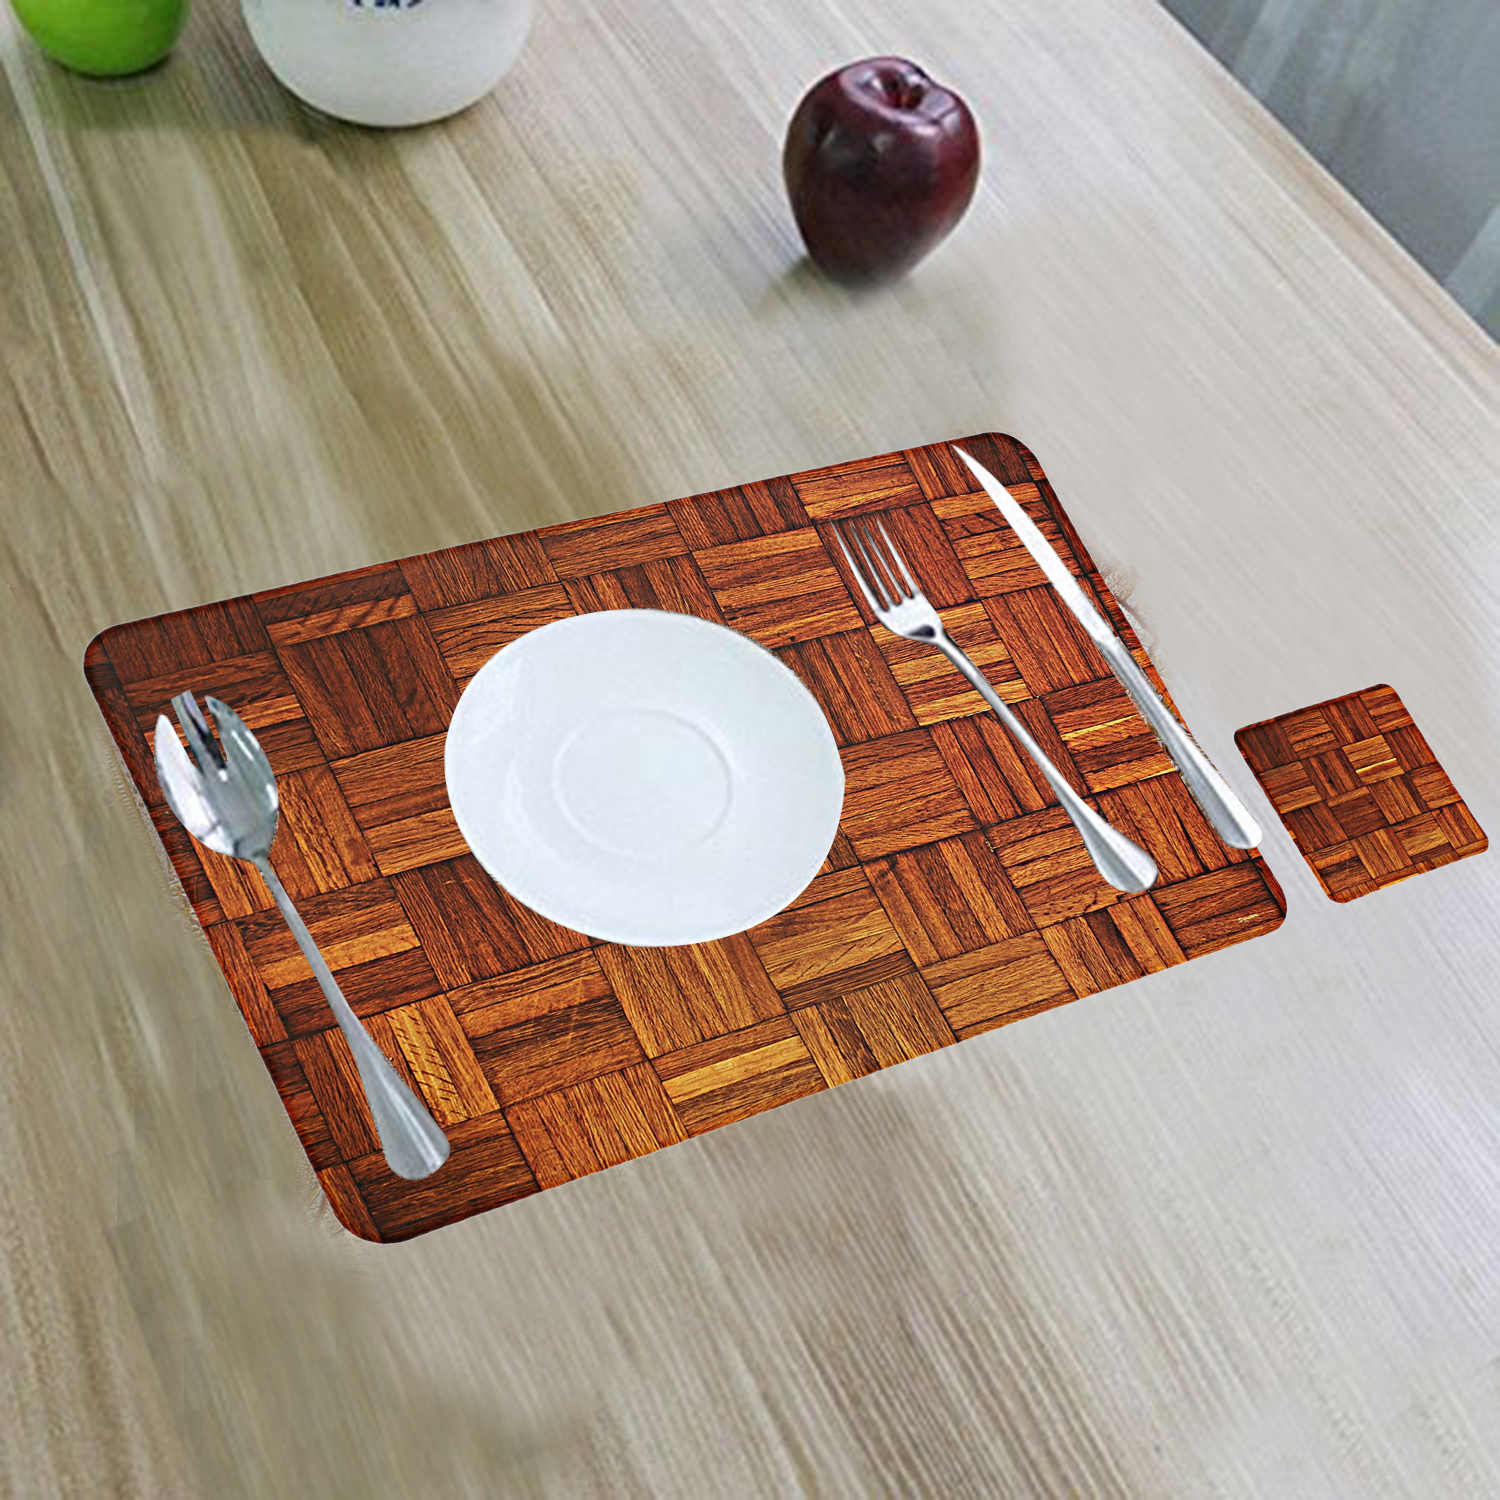 Kuber Industries PVC 6 Pieces Dining Table Placemat Set with Tea Coasters(Multi)